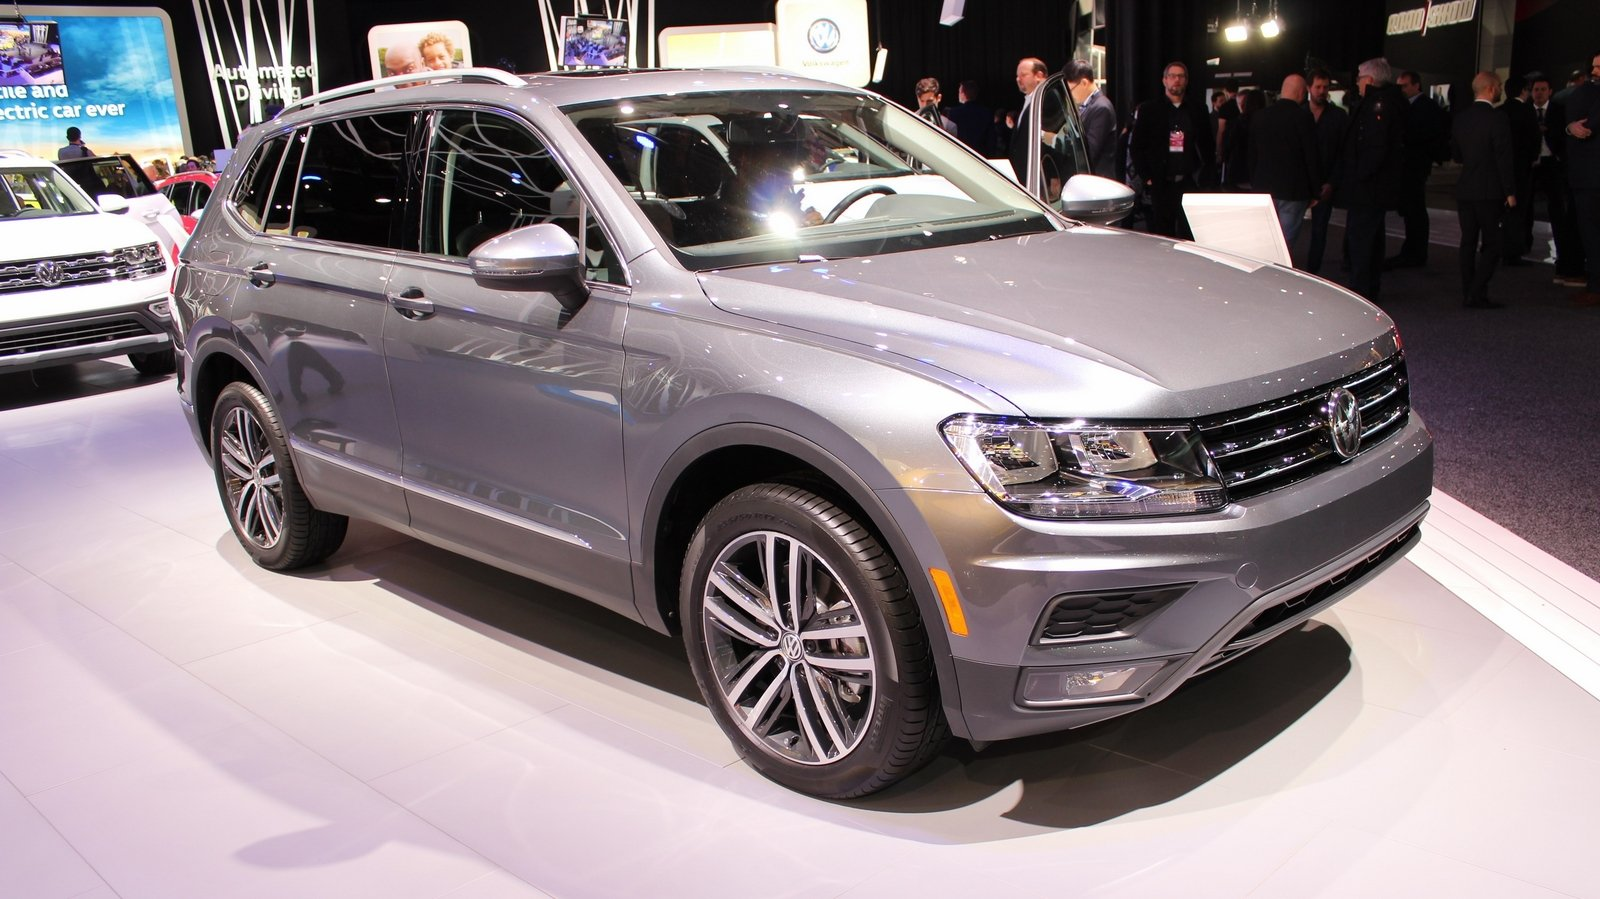 us gets longer volkswagen tiguan with third row seating option pictures photos wallpapers. Black Bedroom Furniture Sets. Home Design Ideas